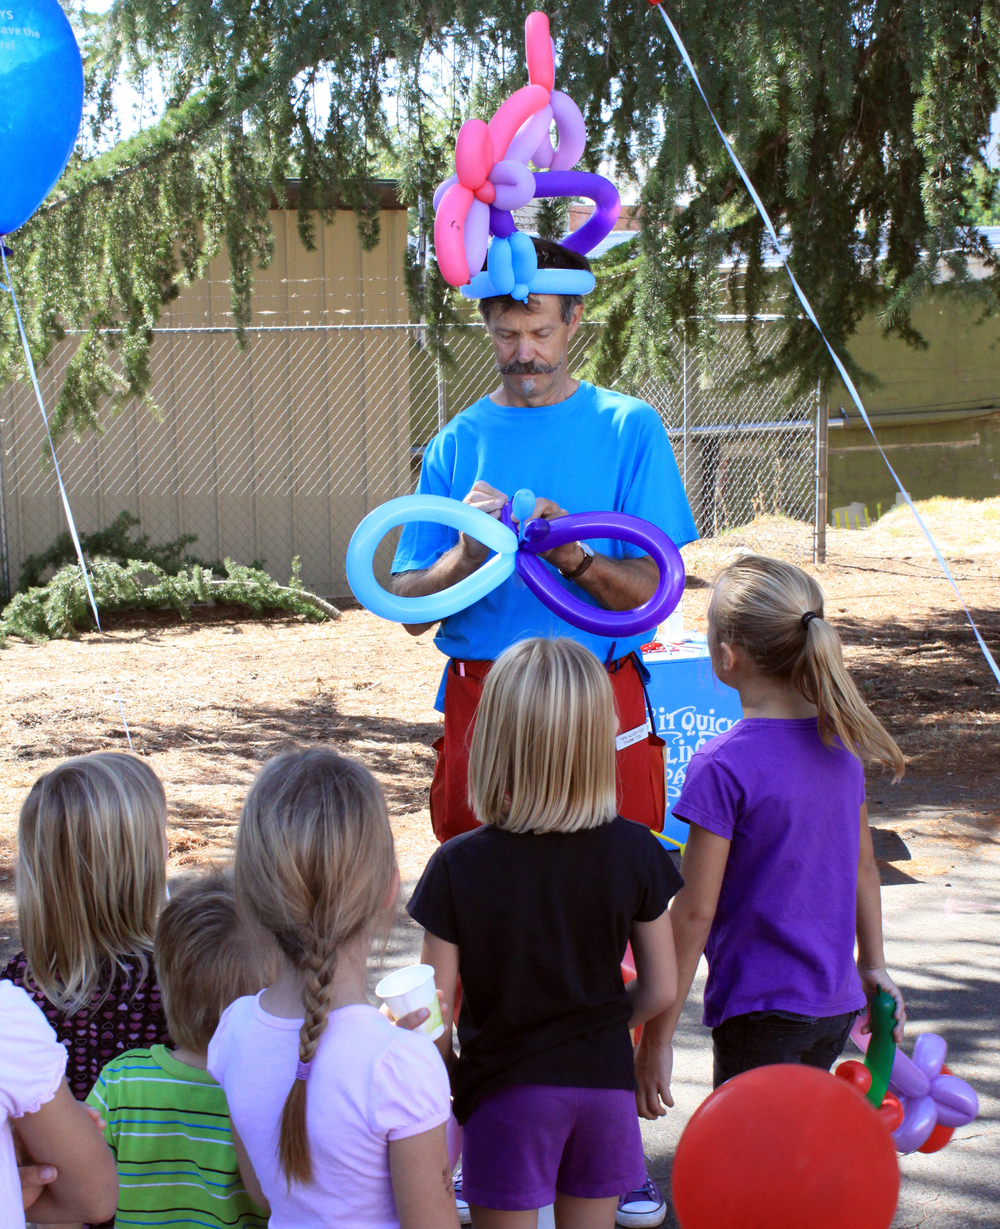 The Butte County Board of Education presents 'A Family Fun Day' at Bicentennial Park featuring Games, Live Music, a Talent Show,        Face Painting and more. Oh yeah, it's free too.